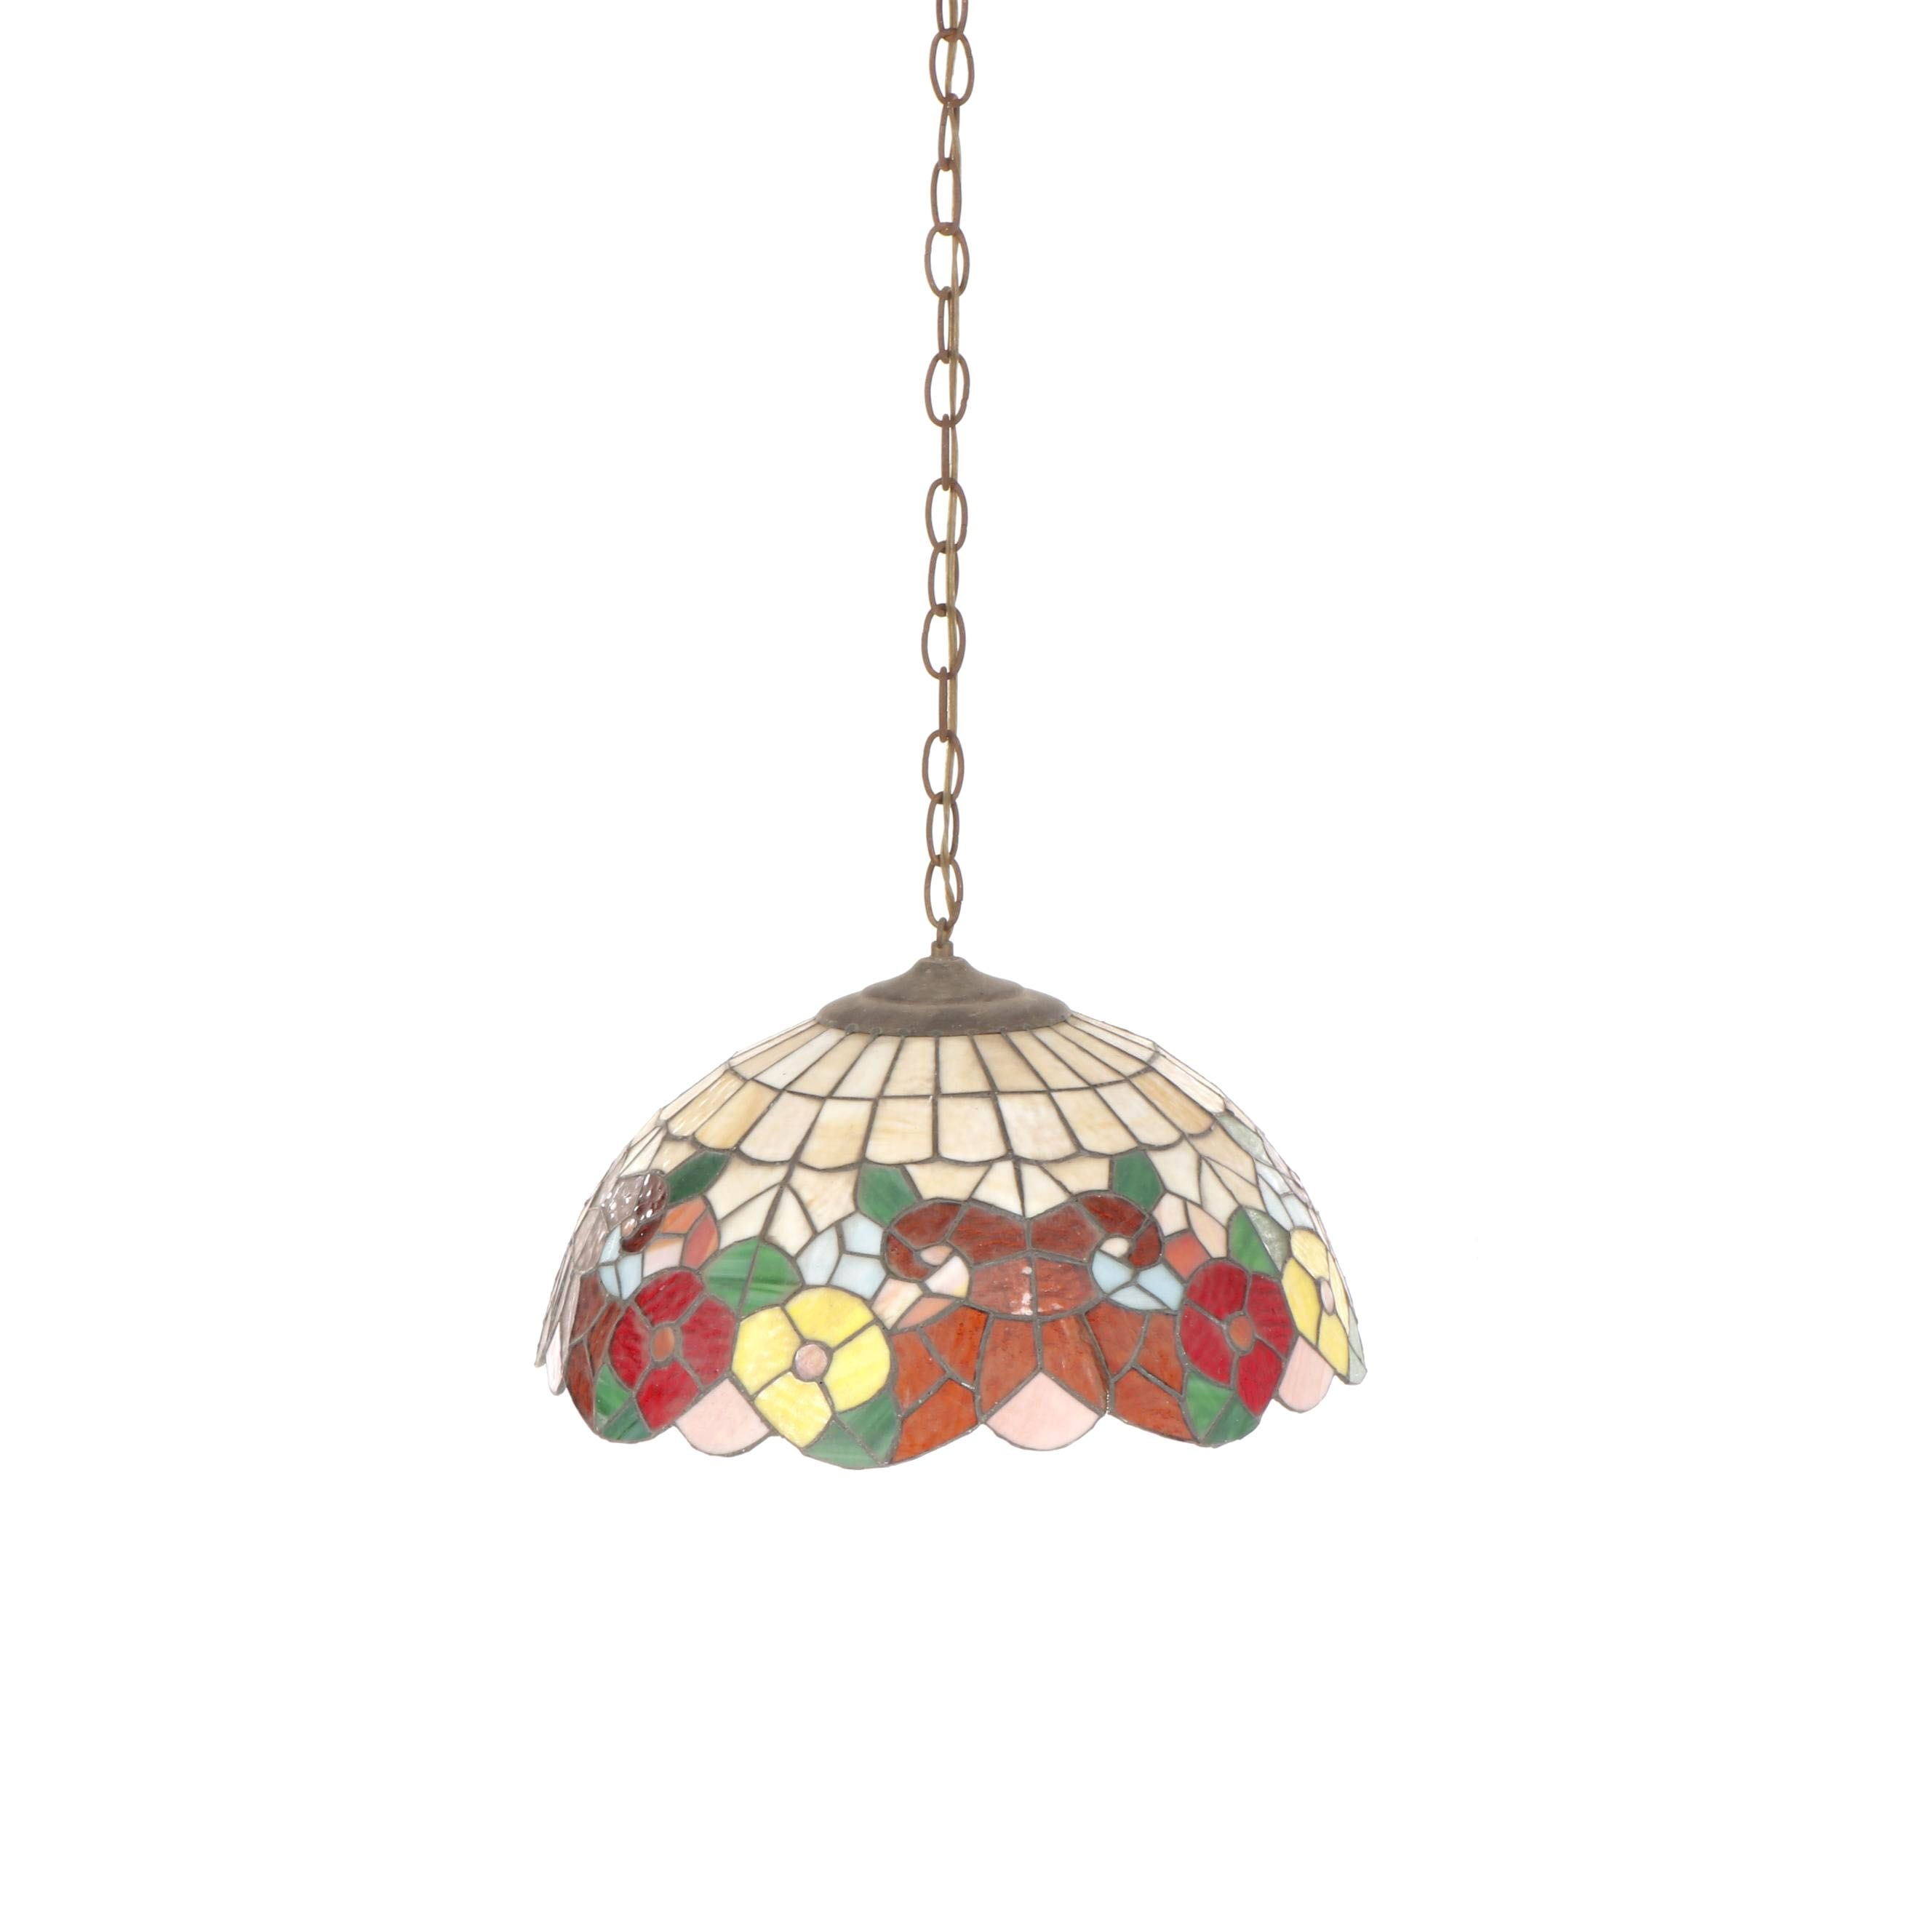 Stained Glass Style Resin Composite Ceiling Pendant